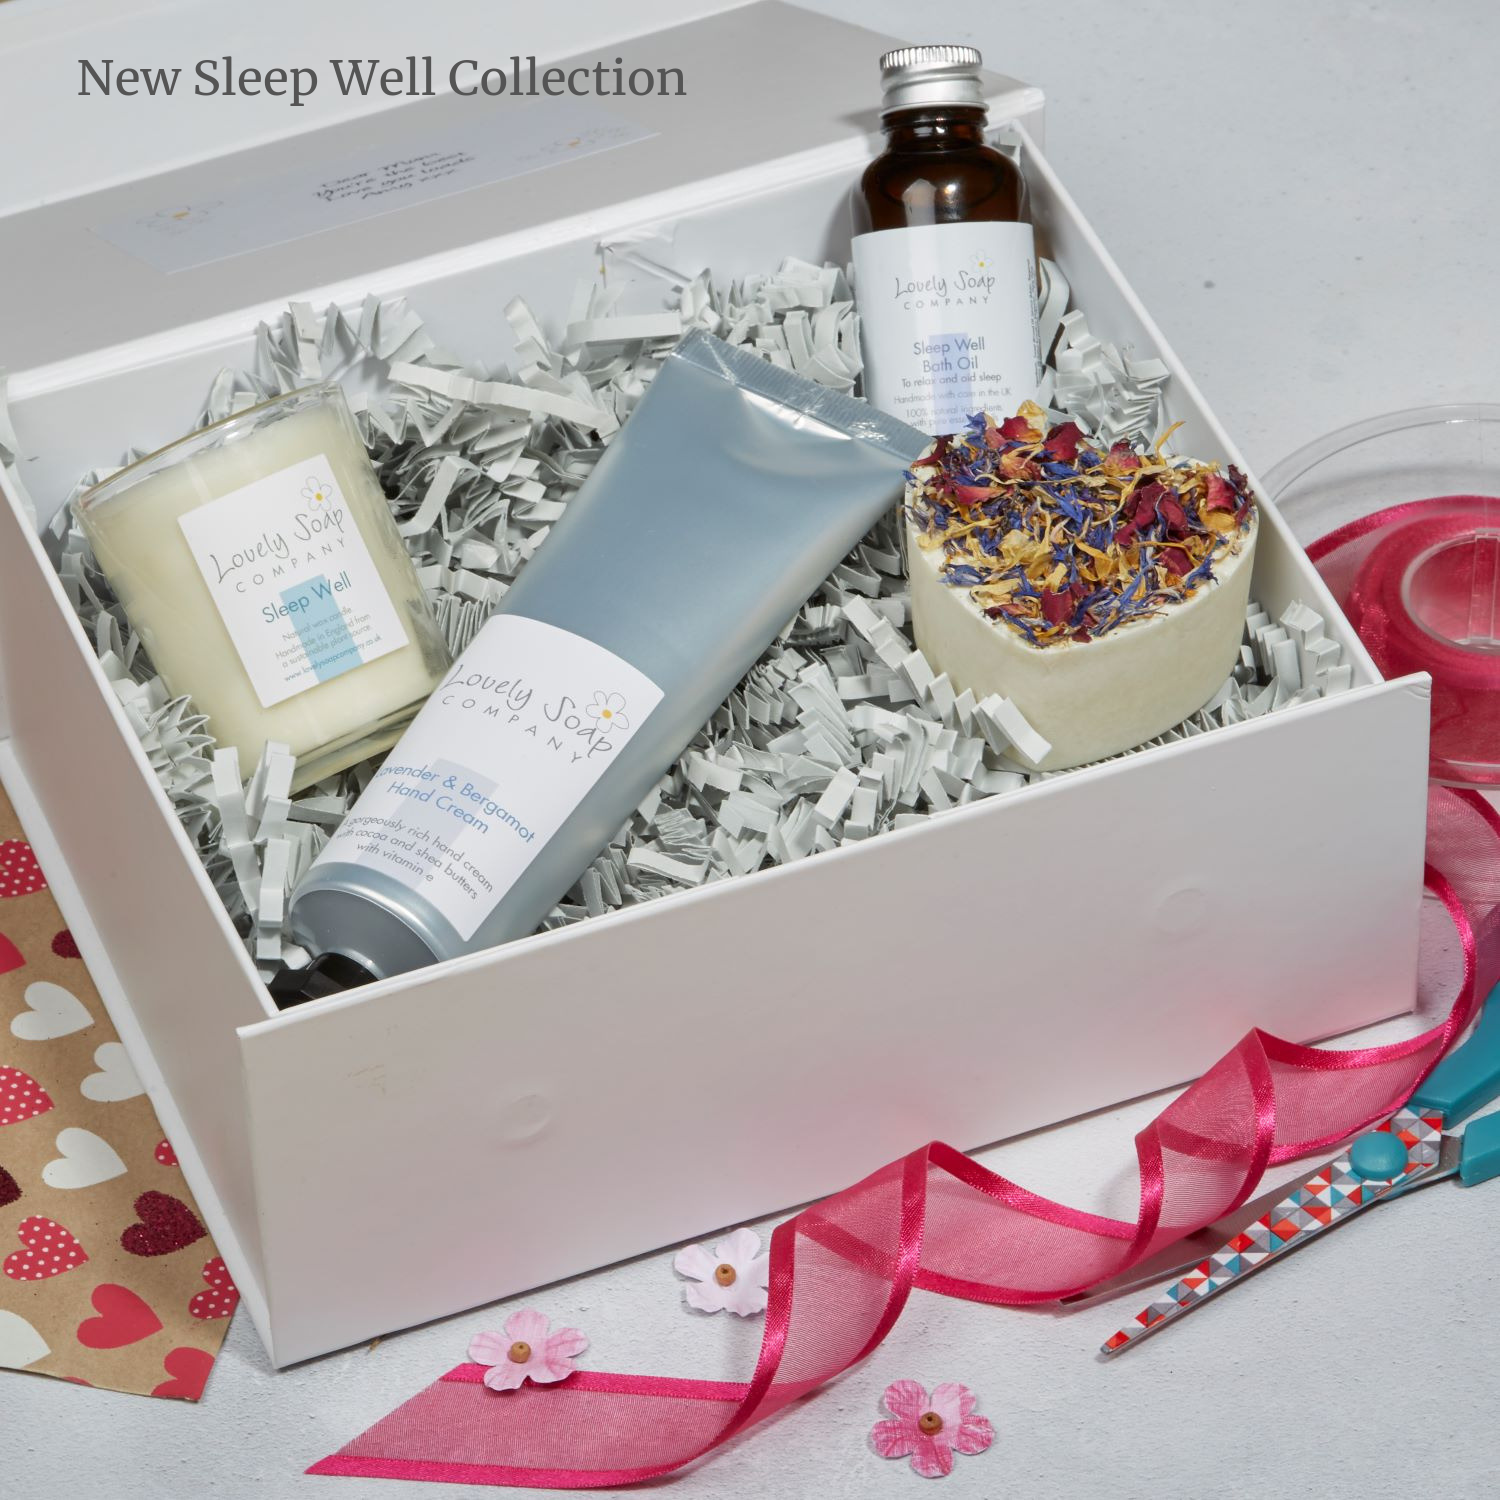 sleep well pamper gift set, Lovely Soap Company, natural handmade soaps